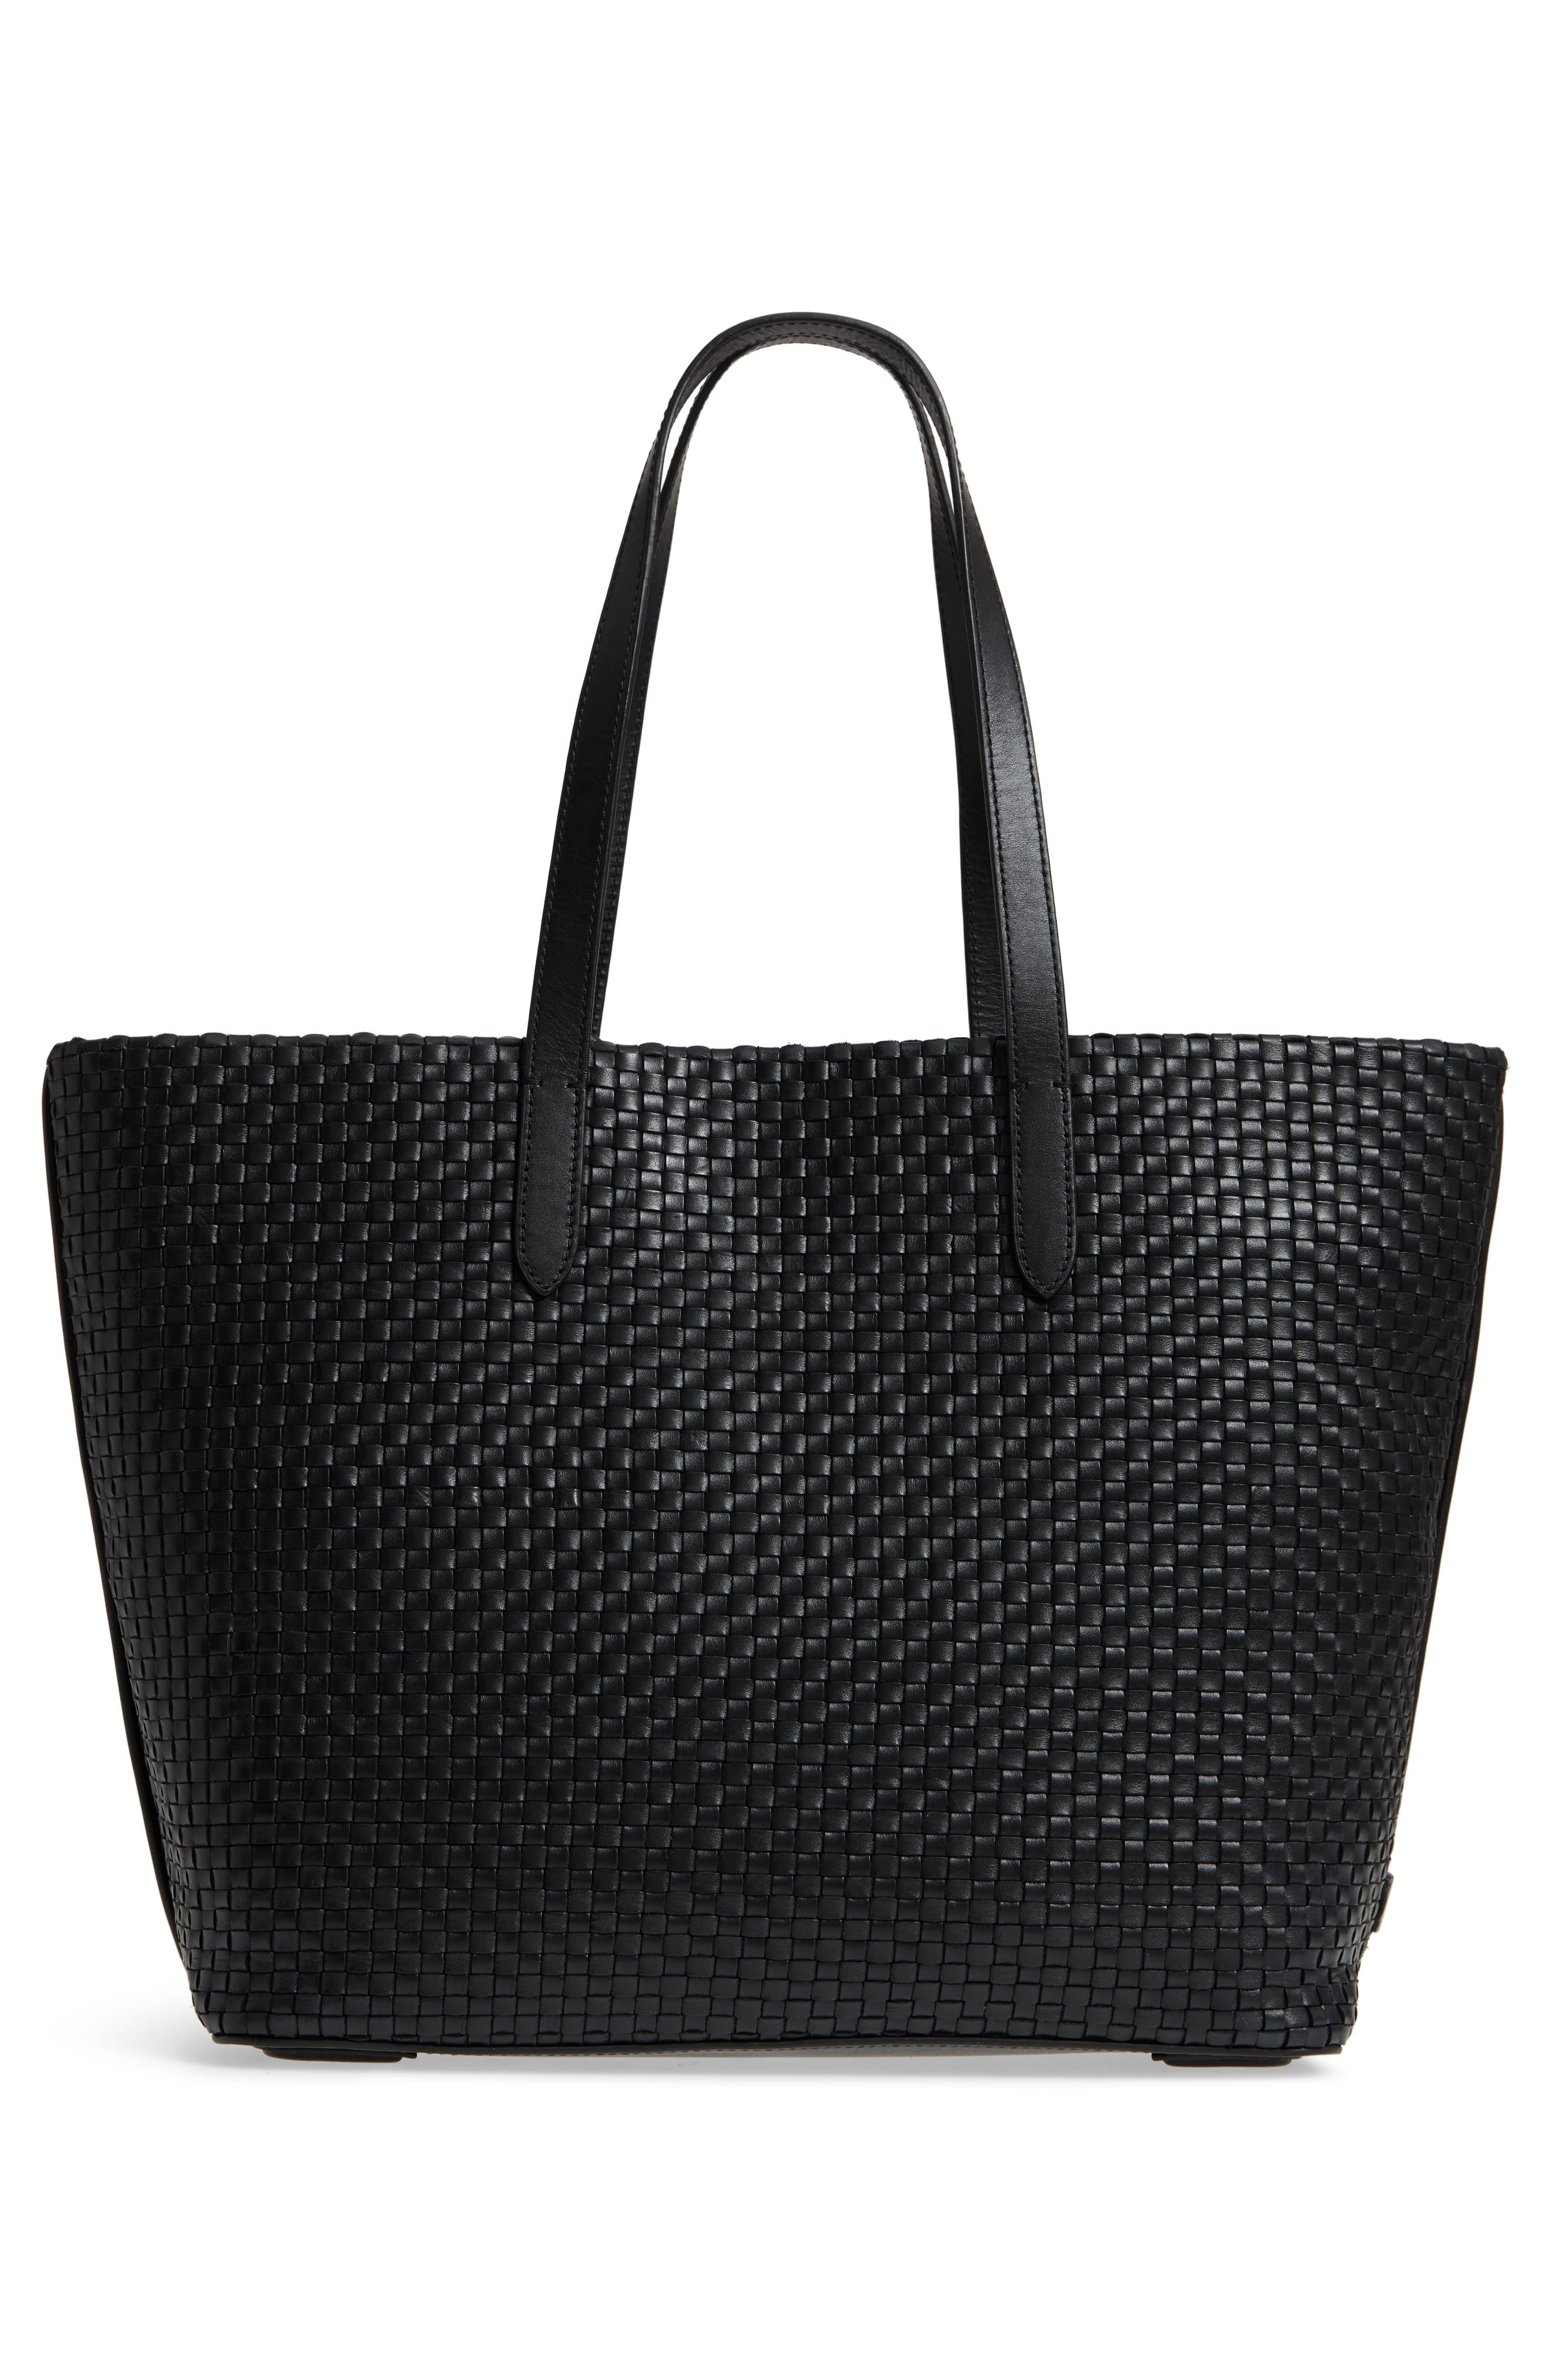 Payson RFID Woven Leather Tote,                             Alternate thumbnail 3, color,                             001